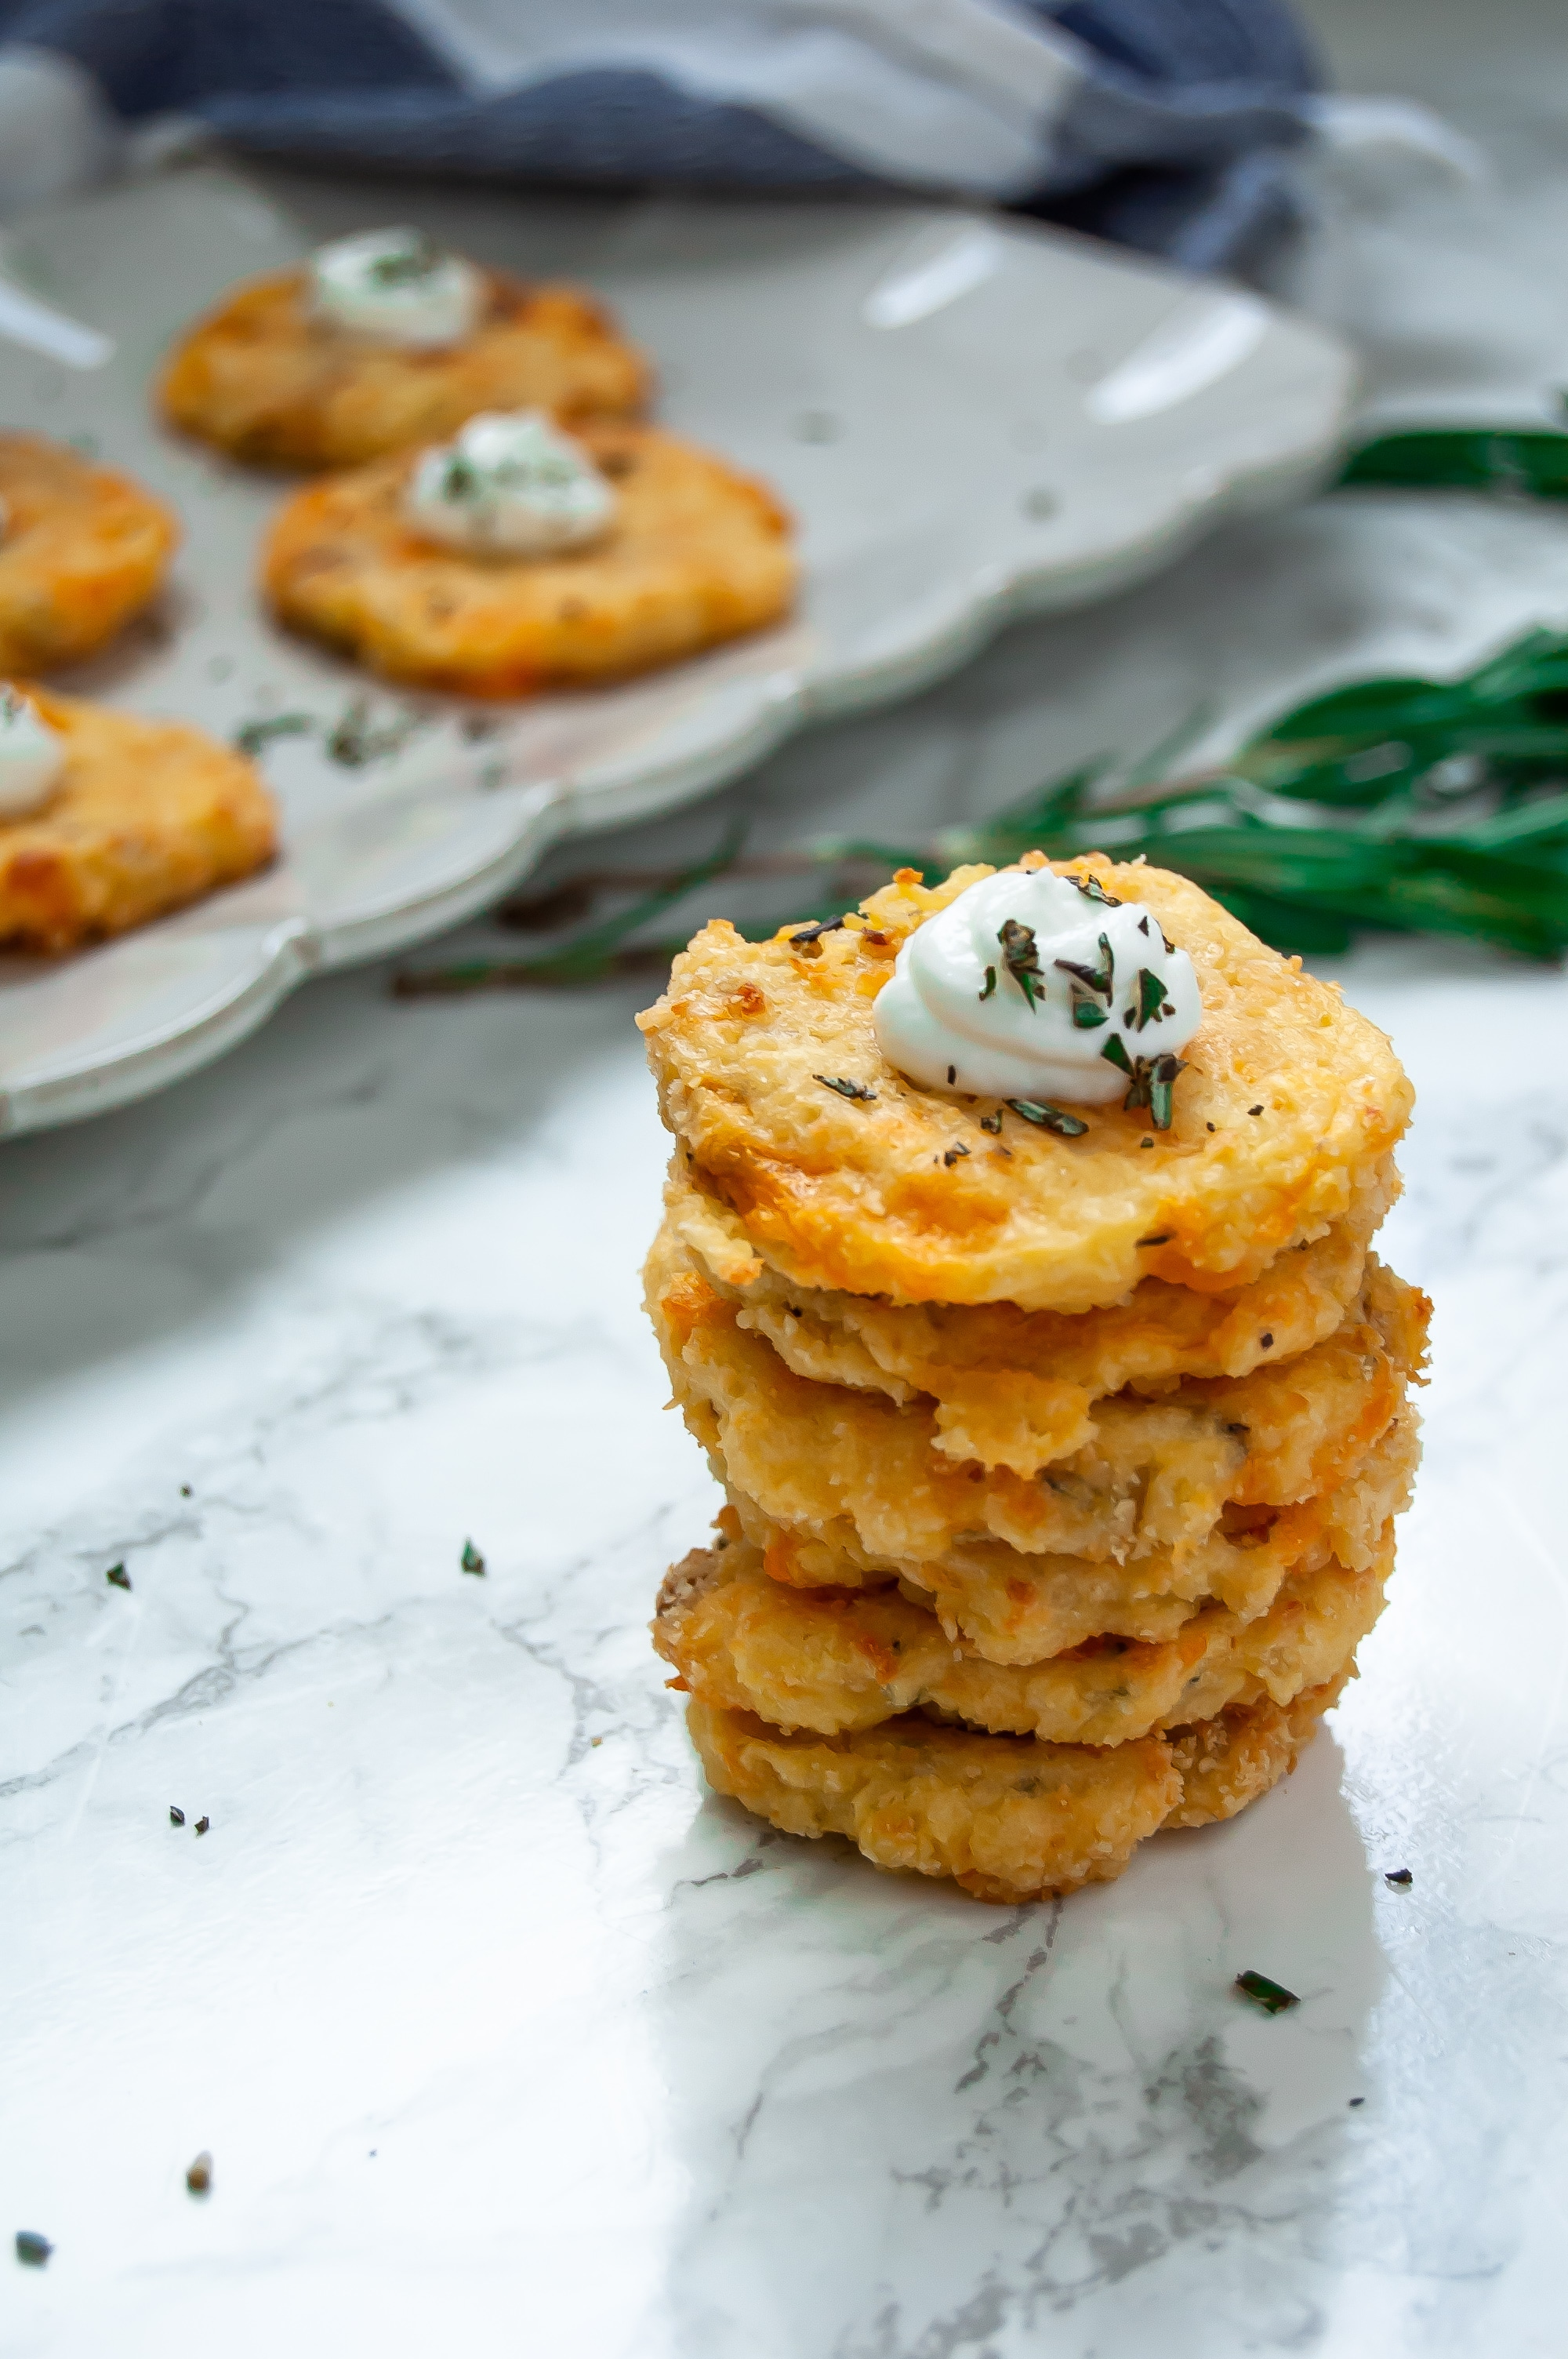 Mashed potato patties are a fun way to use up Thanksgiving leftovers. This leftover mashed potatoes recipe features baked mashed potato patties that are perfect appetizers for snacking!